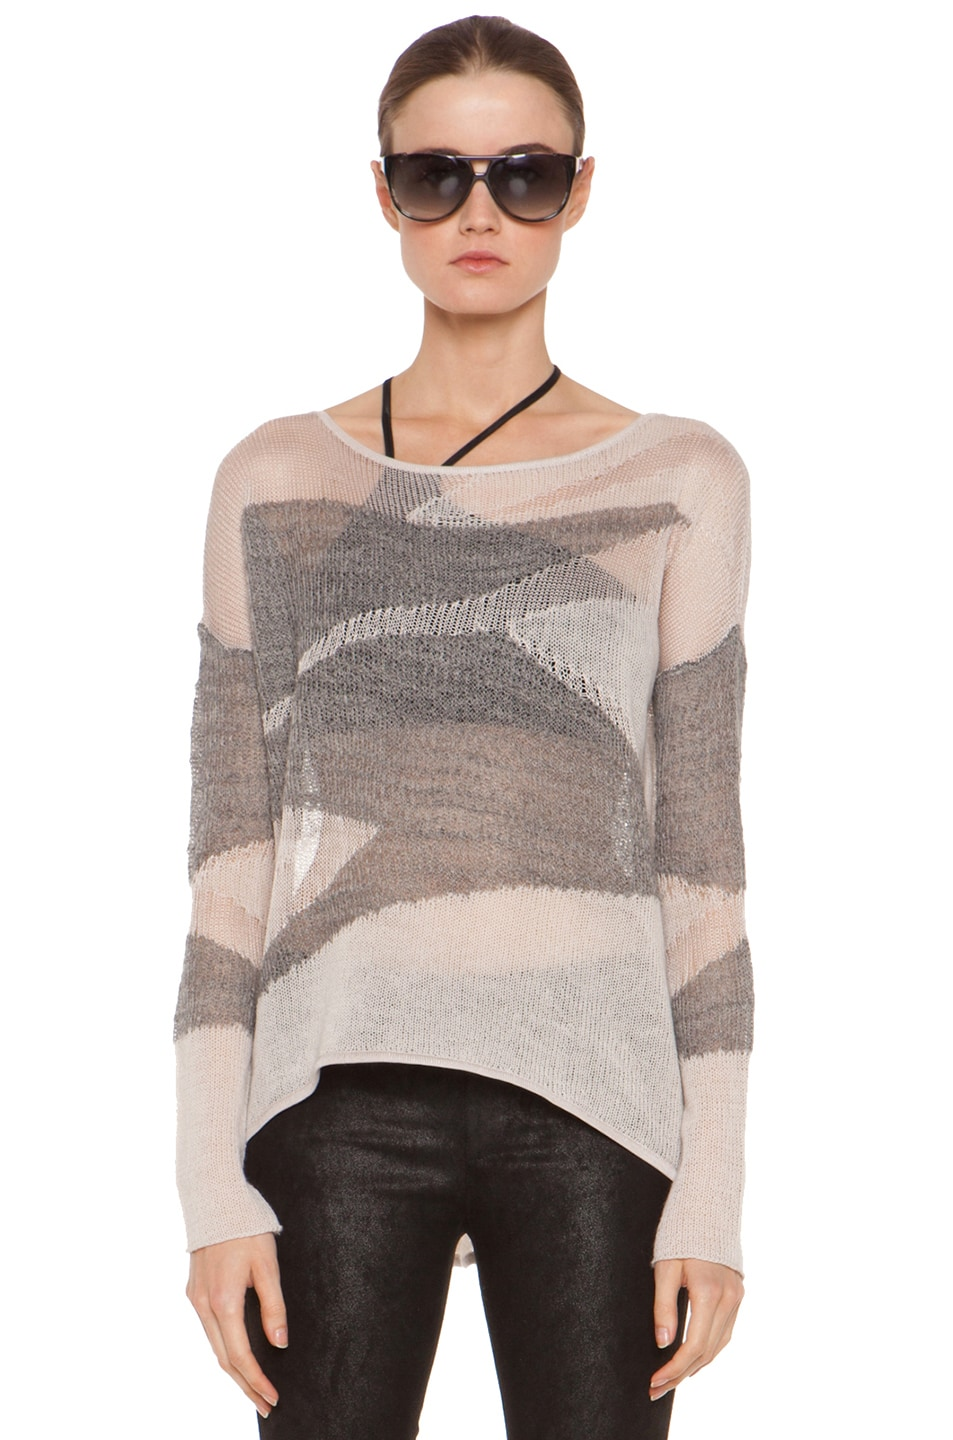 Image 1 of Helmut Lang Merging Texture Boxy Pullover Sweater in Nude